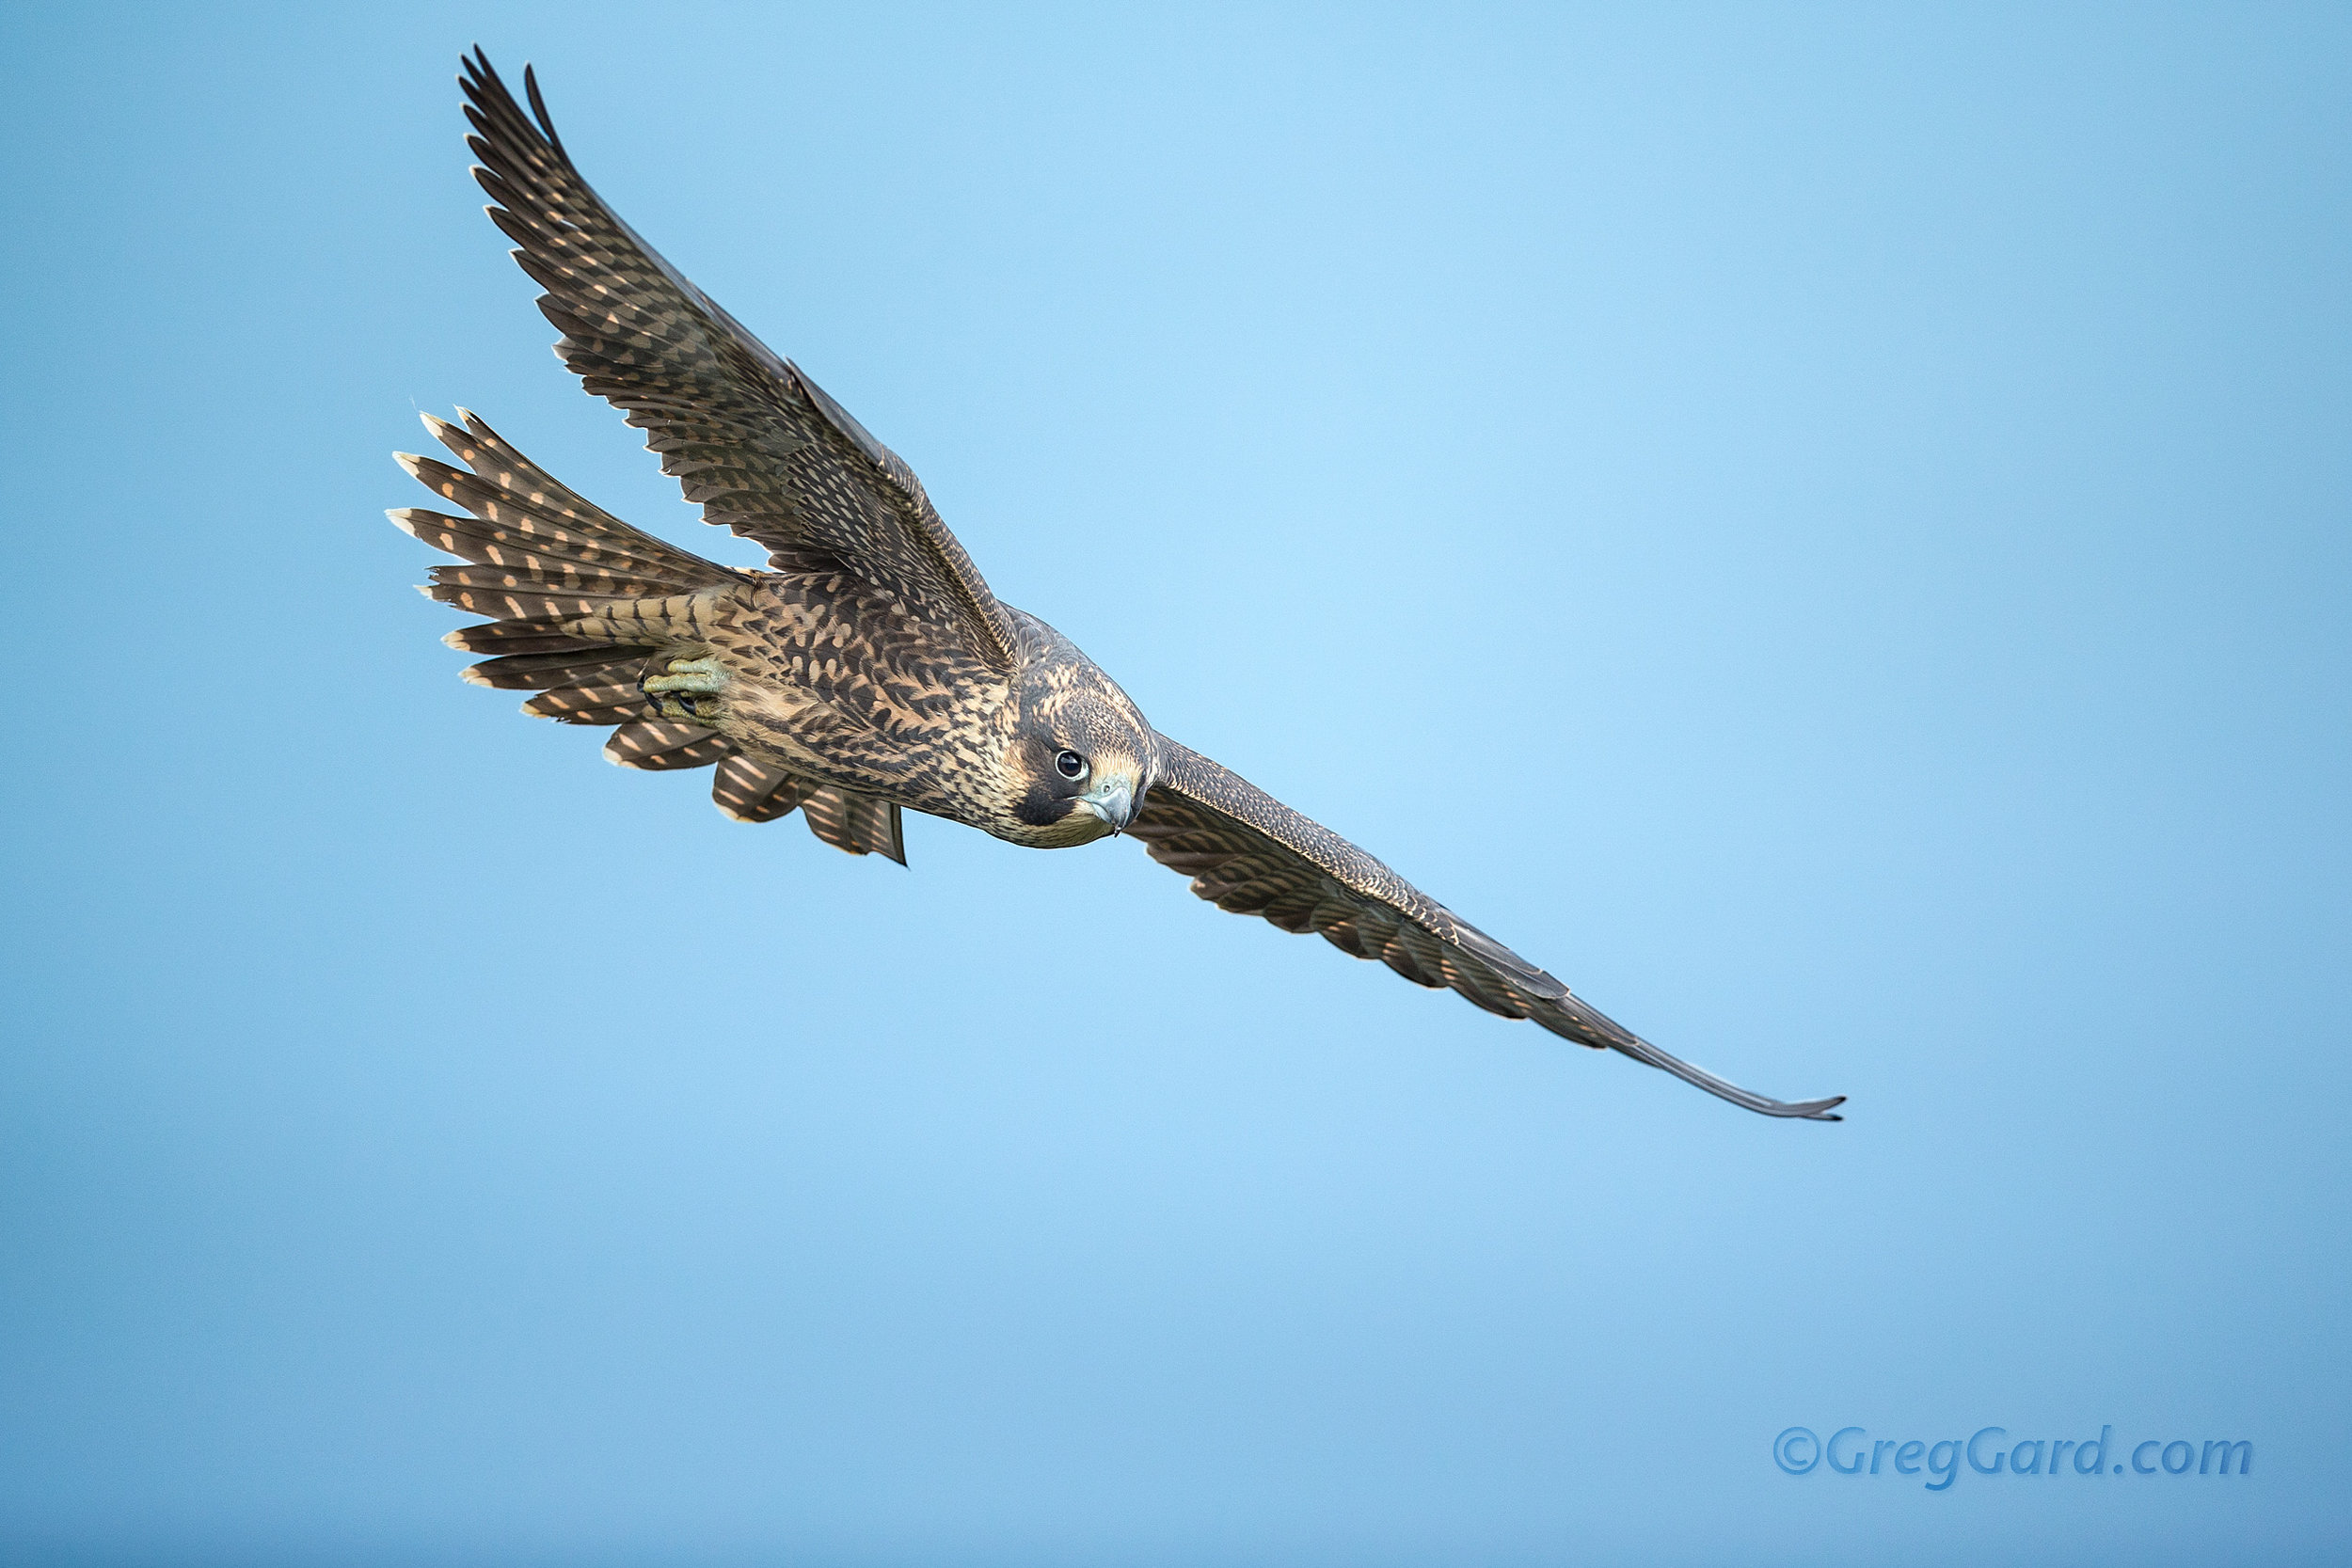 Juvenile Peregrine Falcon flying by